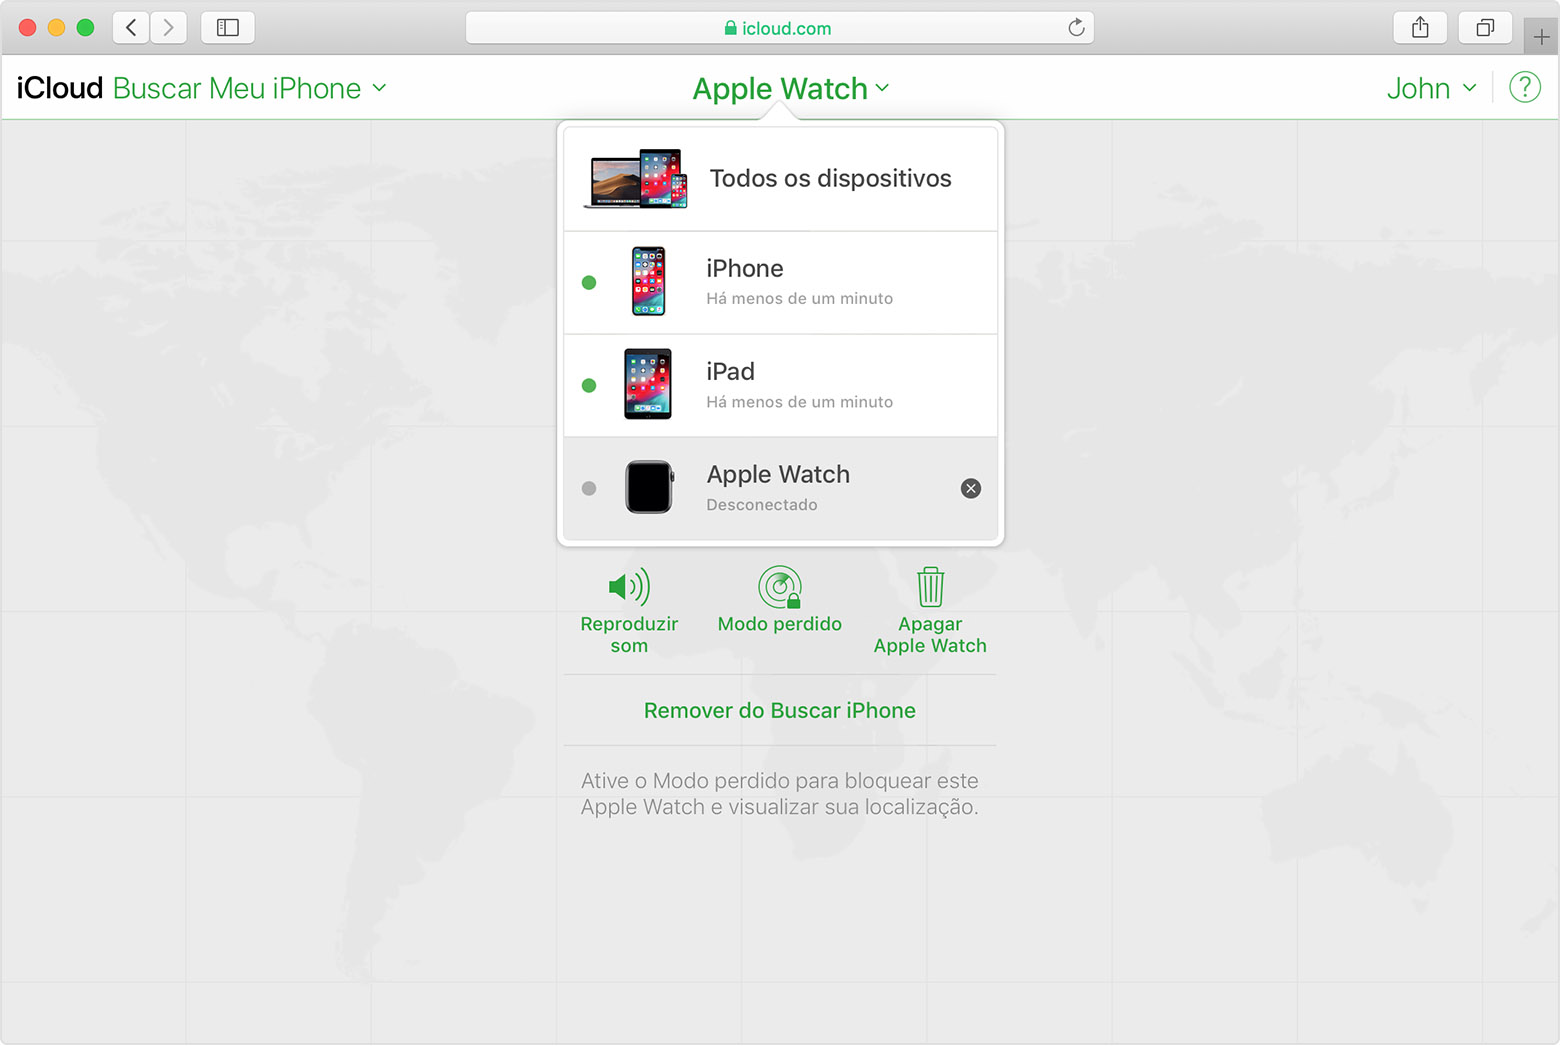 Buscar iPhone no iCloud mostrando o Apple Watch de João